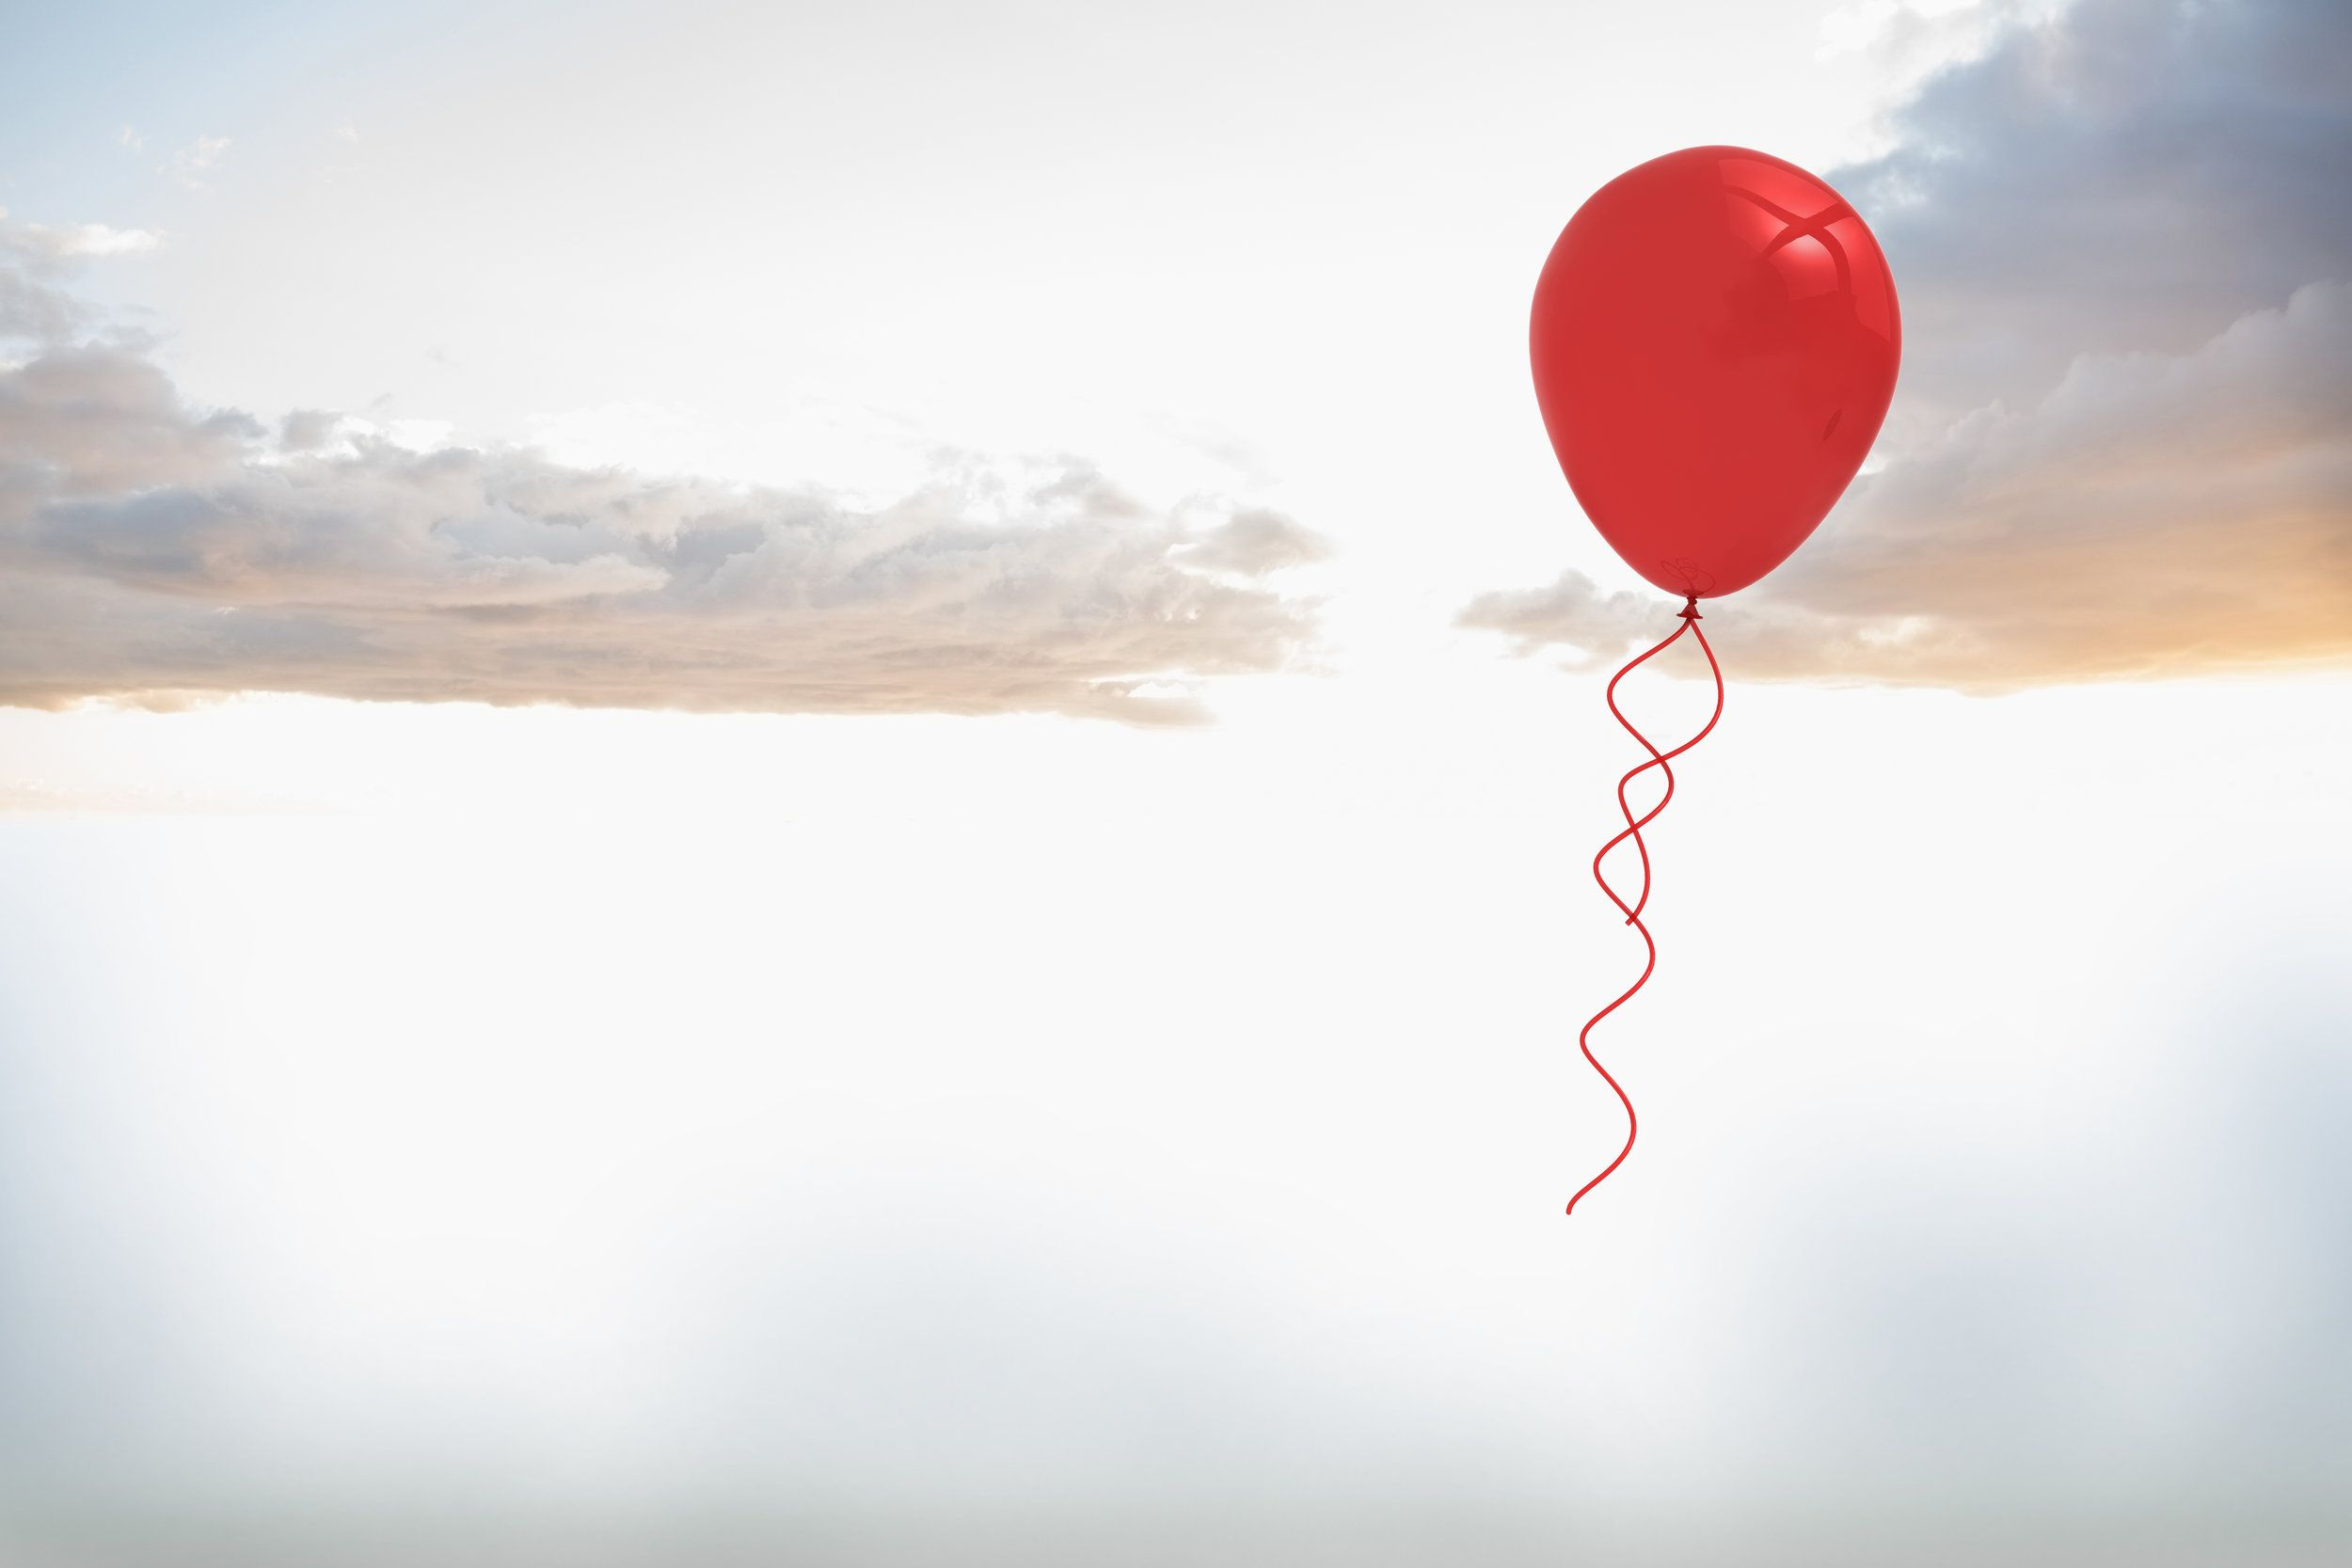 My Favorite Covers Of 99 Luftballons 99 Red Balloons Katherine Locke In 2020 Red Balloon Balloons My Favorite Things